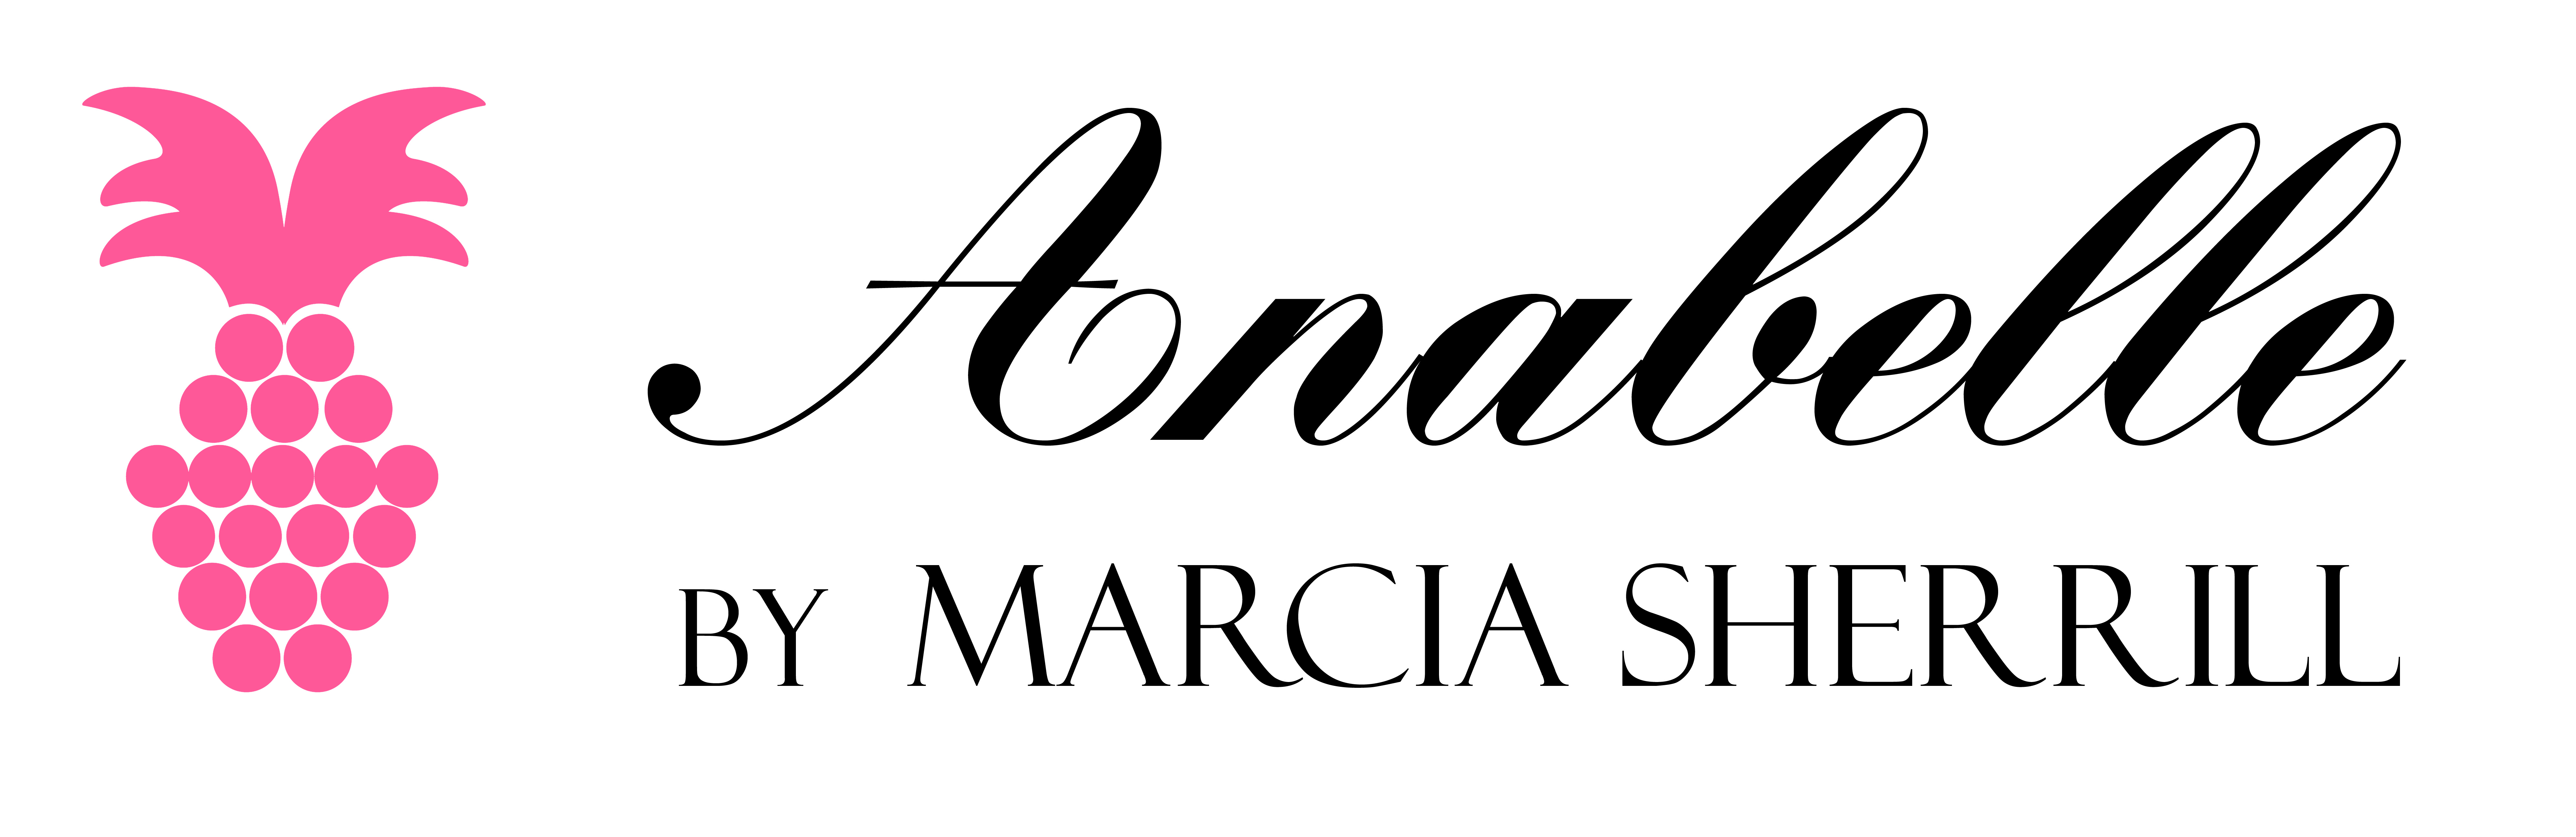 anabelle by marcia sherrill anabelle by marcia sherrill is a lifestyle brand defined by classic american spirit an eclectic sensibility and attainable price points